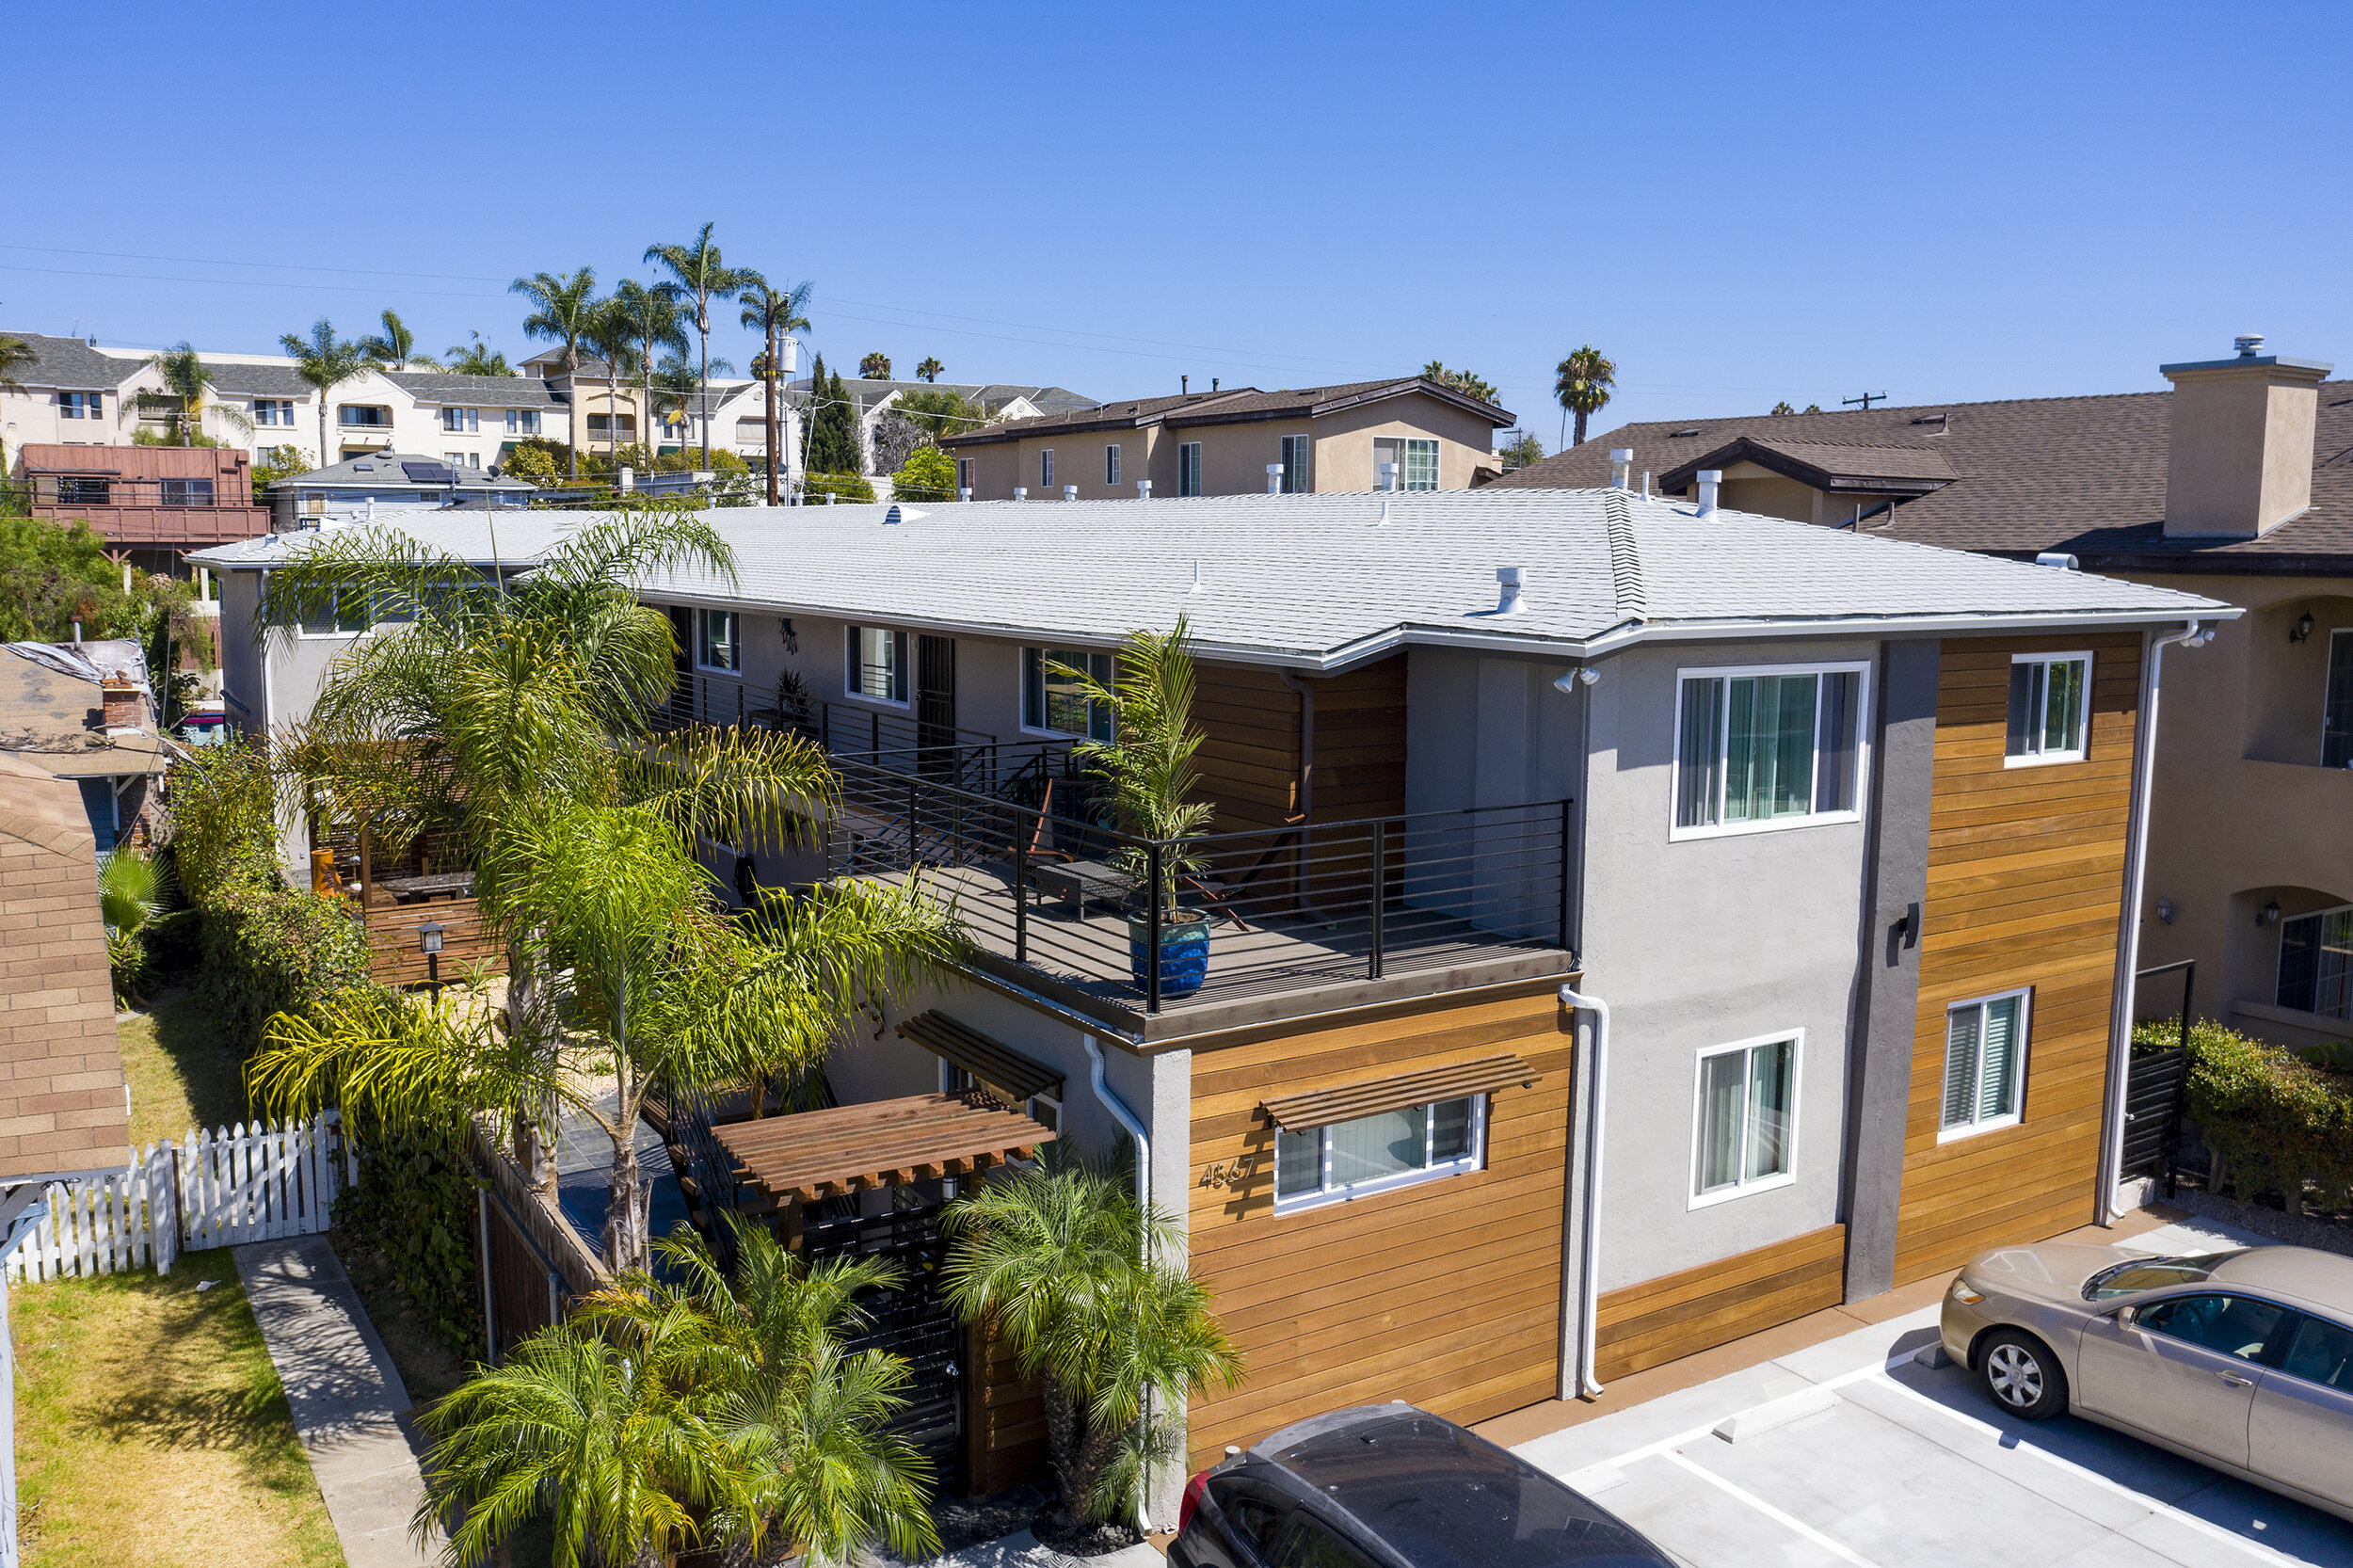 4567 Texas Street - Status: ActiveMarket: North ParkNumber of Units: 15Price: $3,425,000